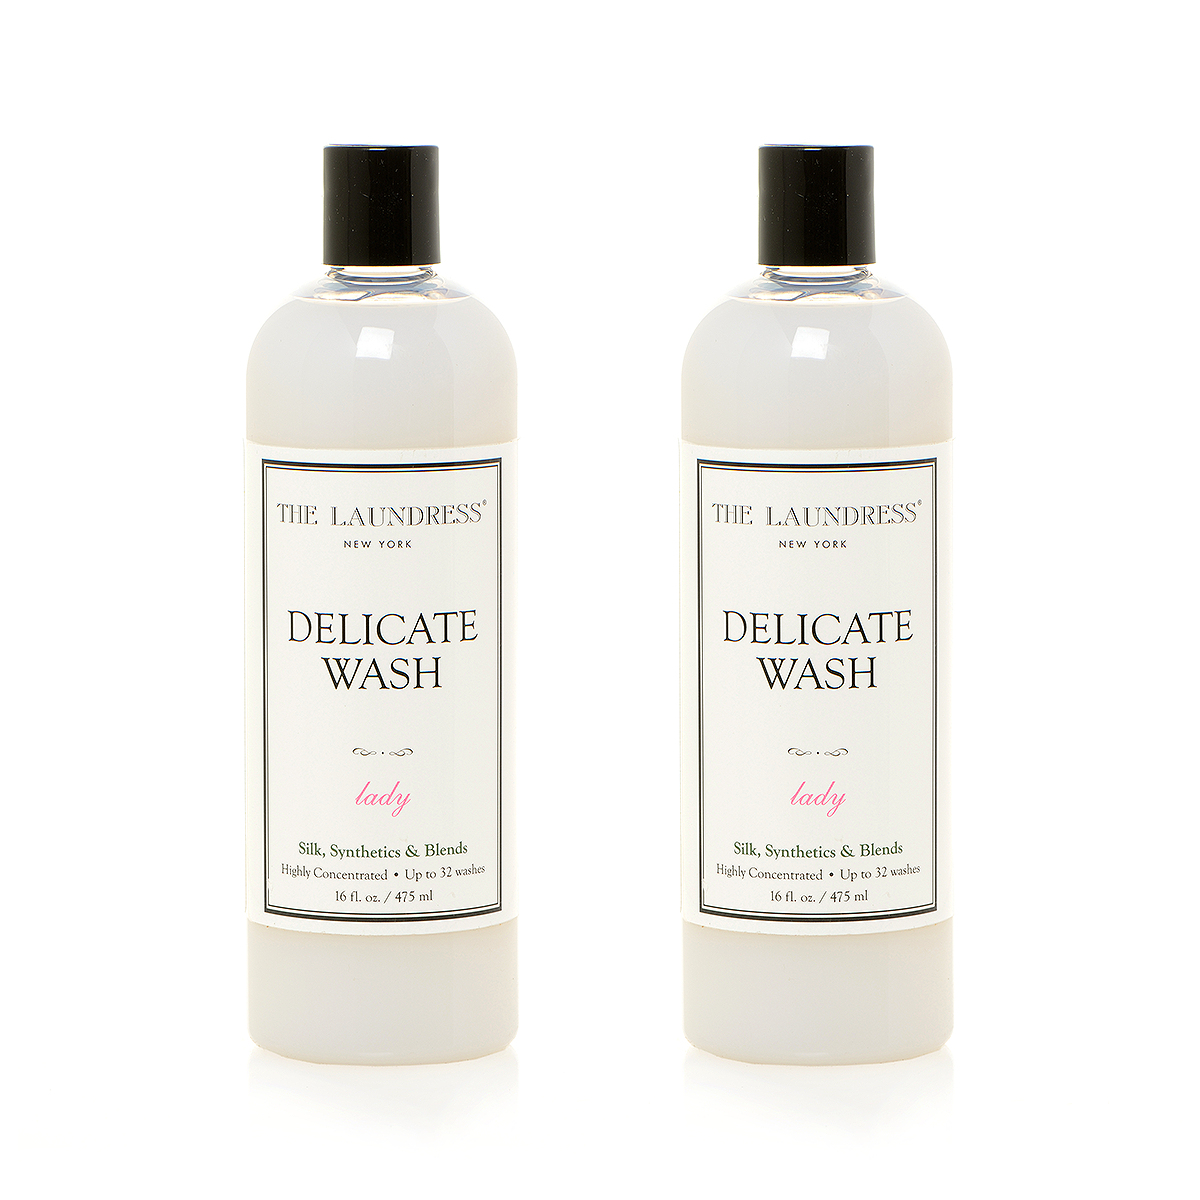 The Laundress Laundry Detergent, Delicate Wash Lady 475ml 衣物清潔系列 精緻衣物洗衣精 兩瓶裝 套組